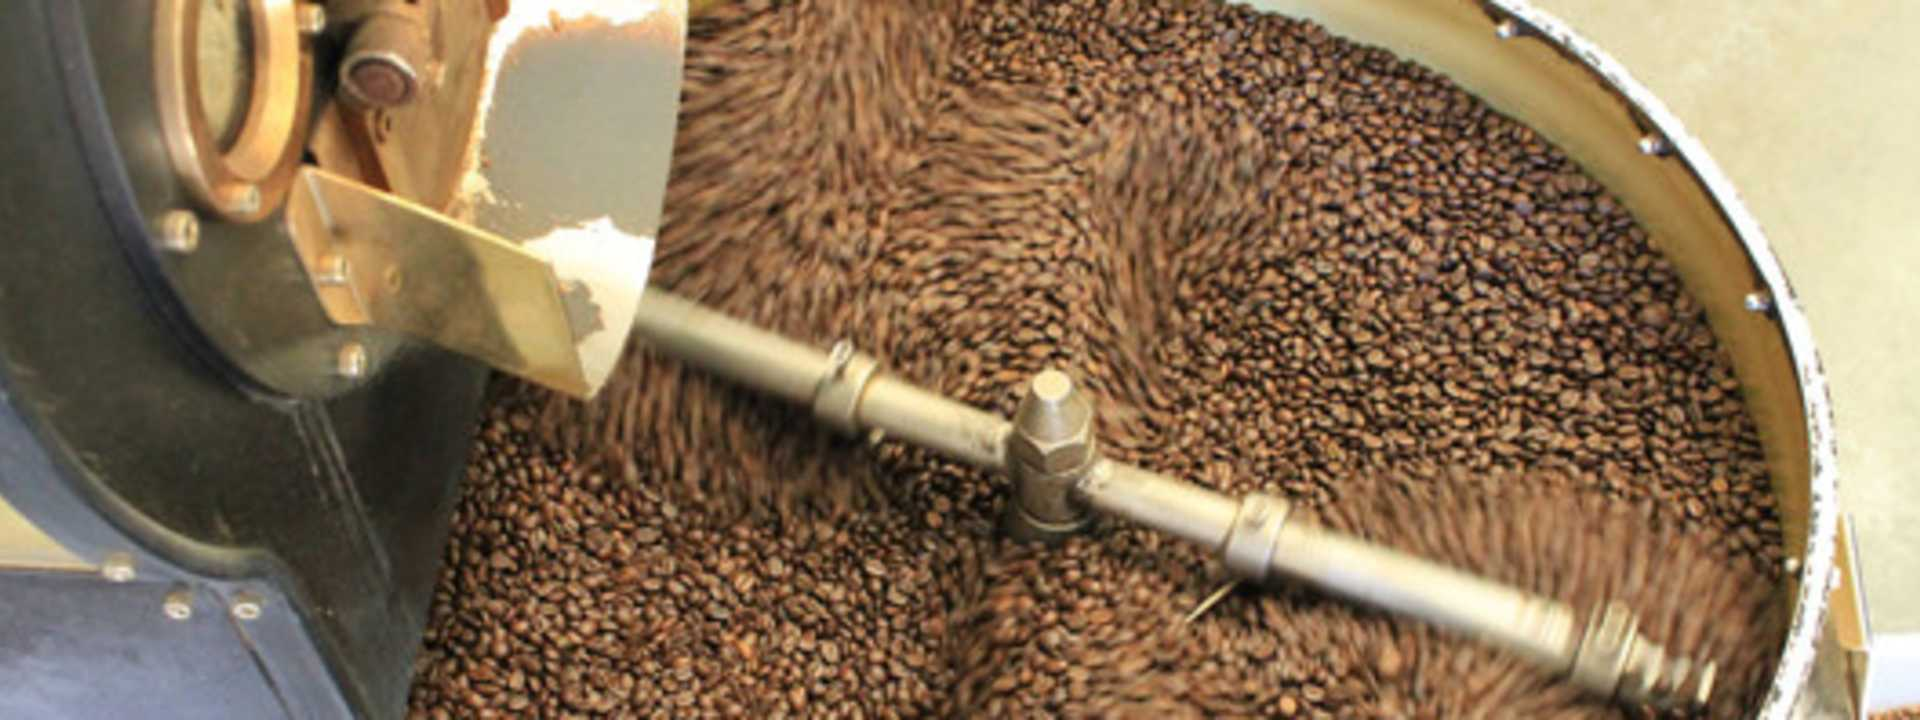 Freshly-roasted coffee beans tumble in a large vat.